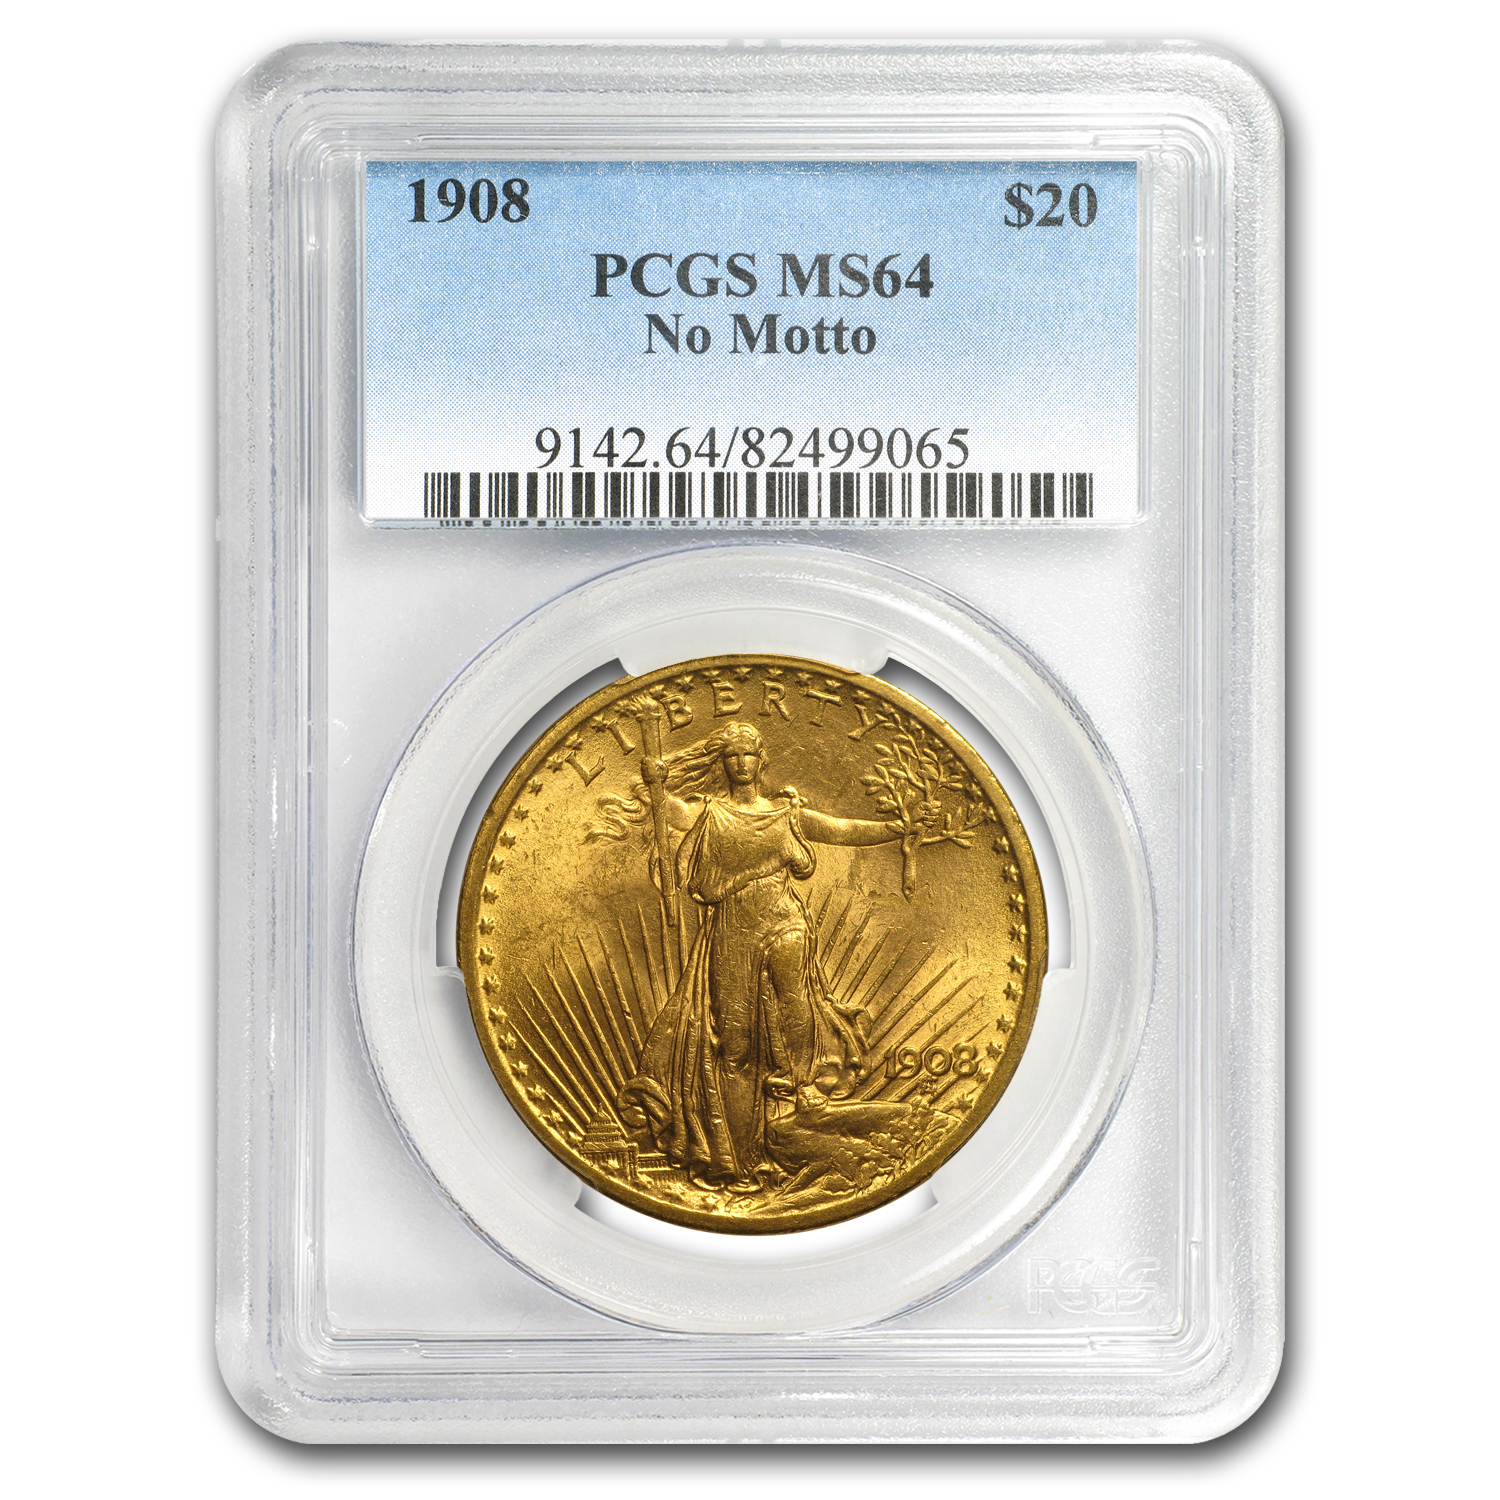 1908 $20 St. Gaudens Gold Double Eagle - No Motto - MS-64 PCGS